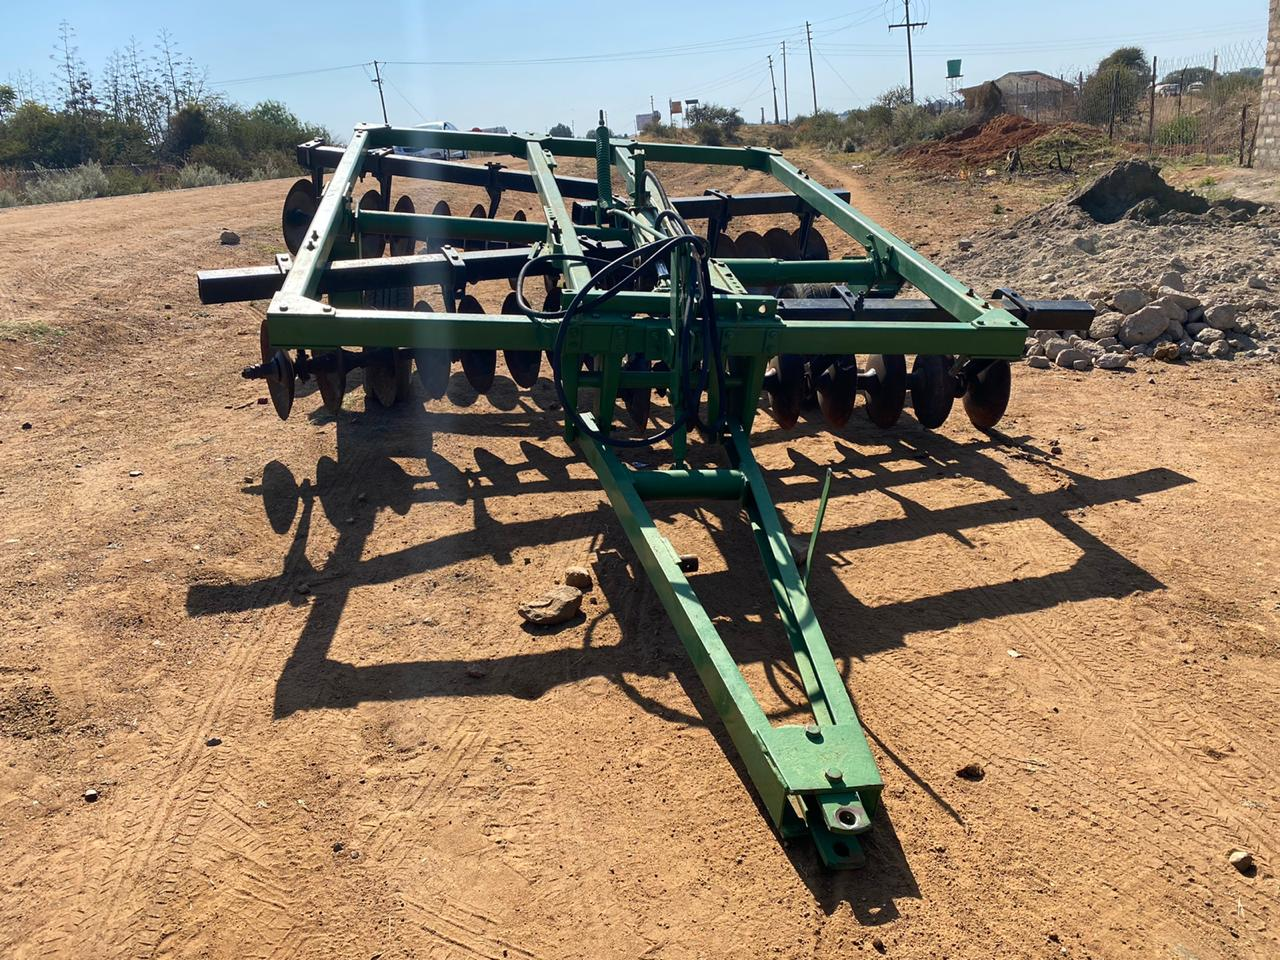 32 Skottel/ disc Hydraulic Trailled Plough